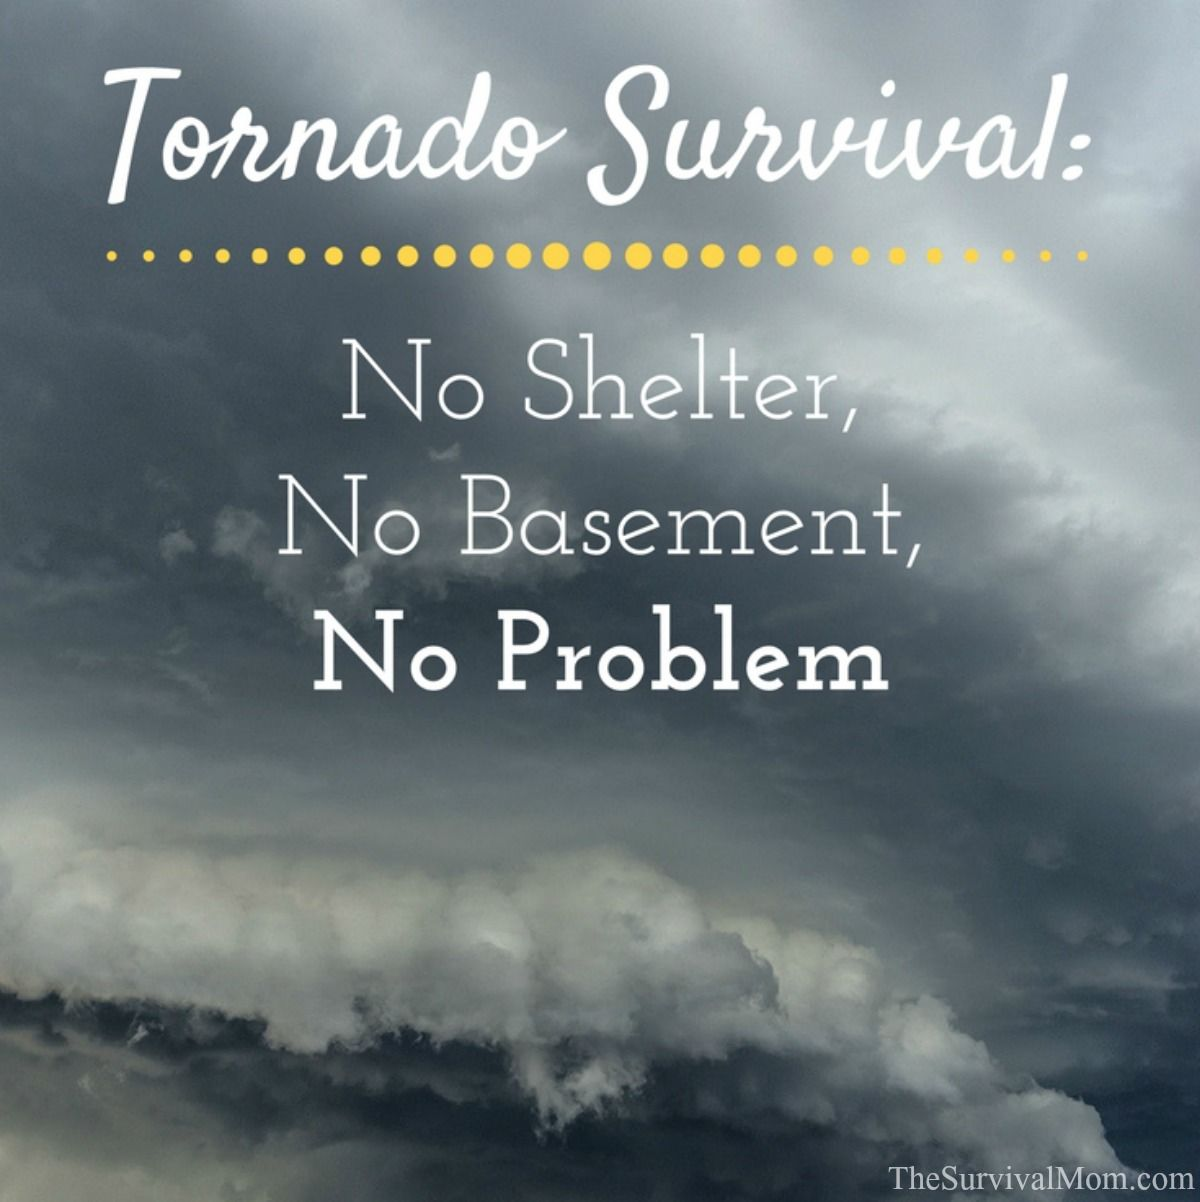 Tornado Survival No Shelter, No Basement, No Problem via The Survival Mom